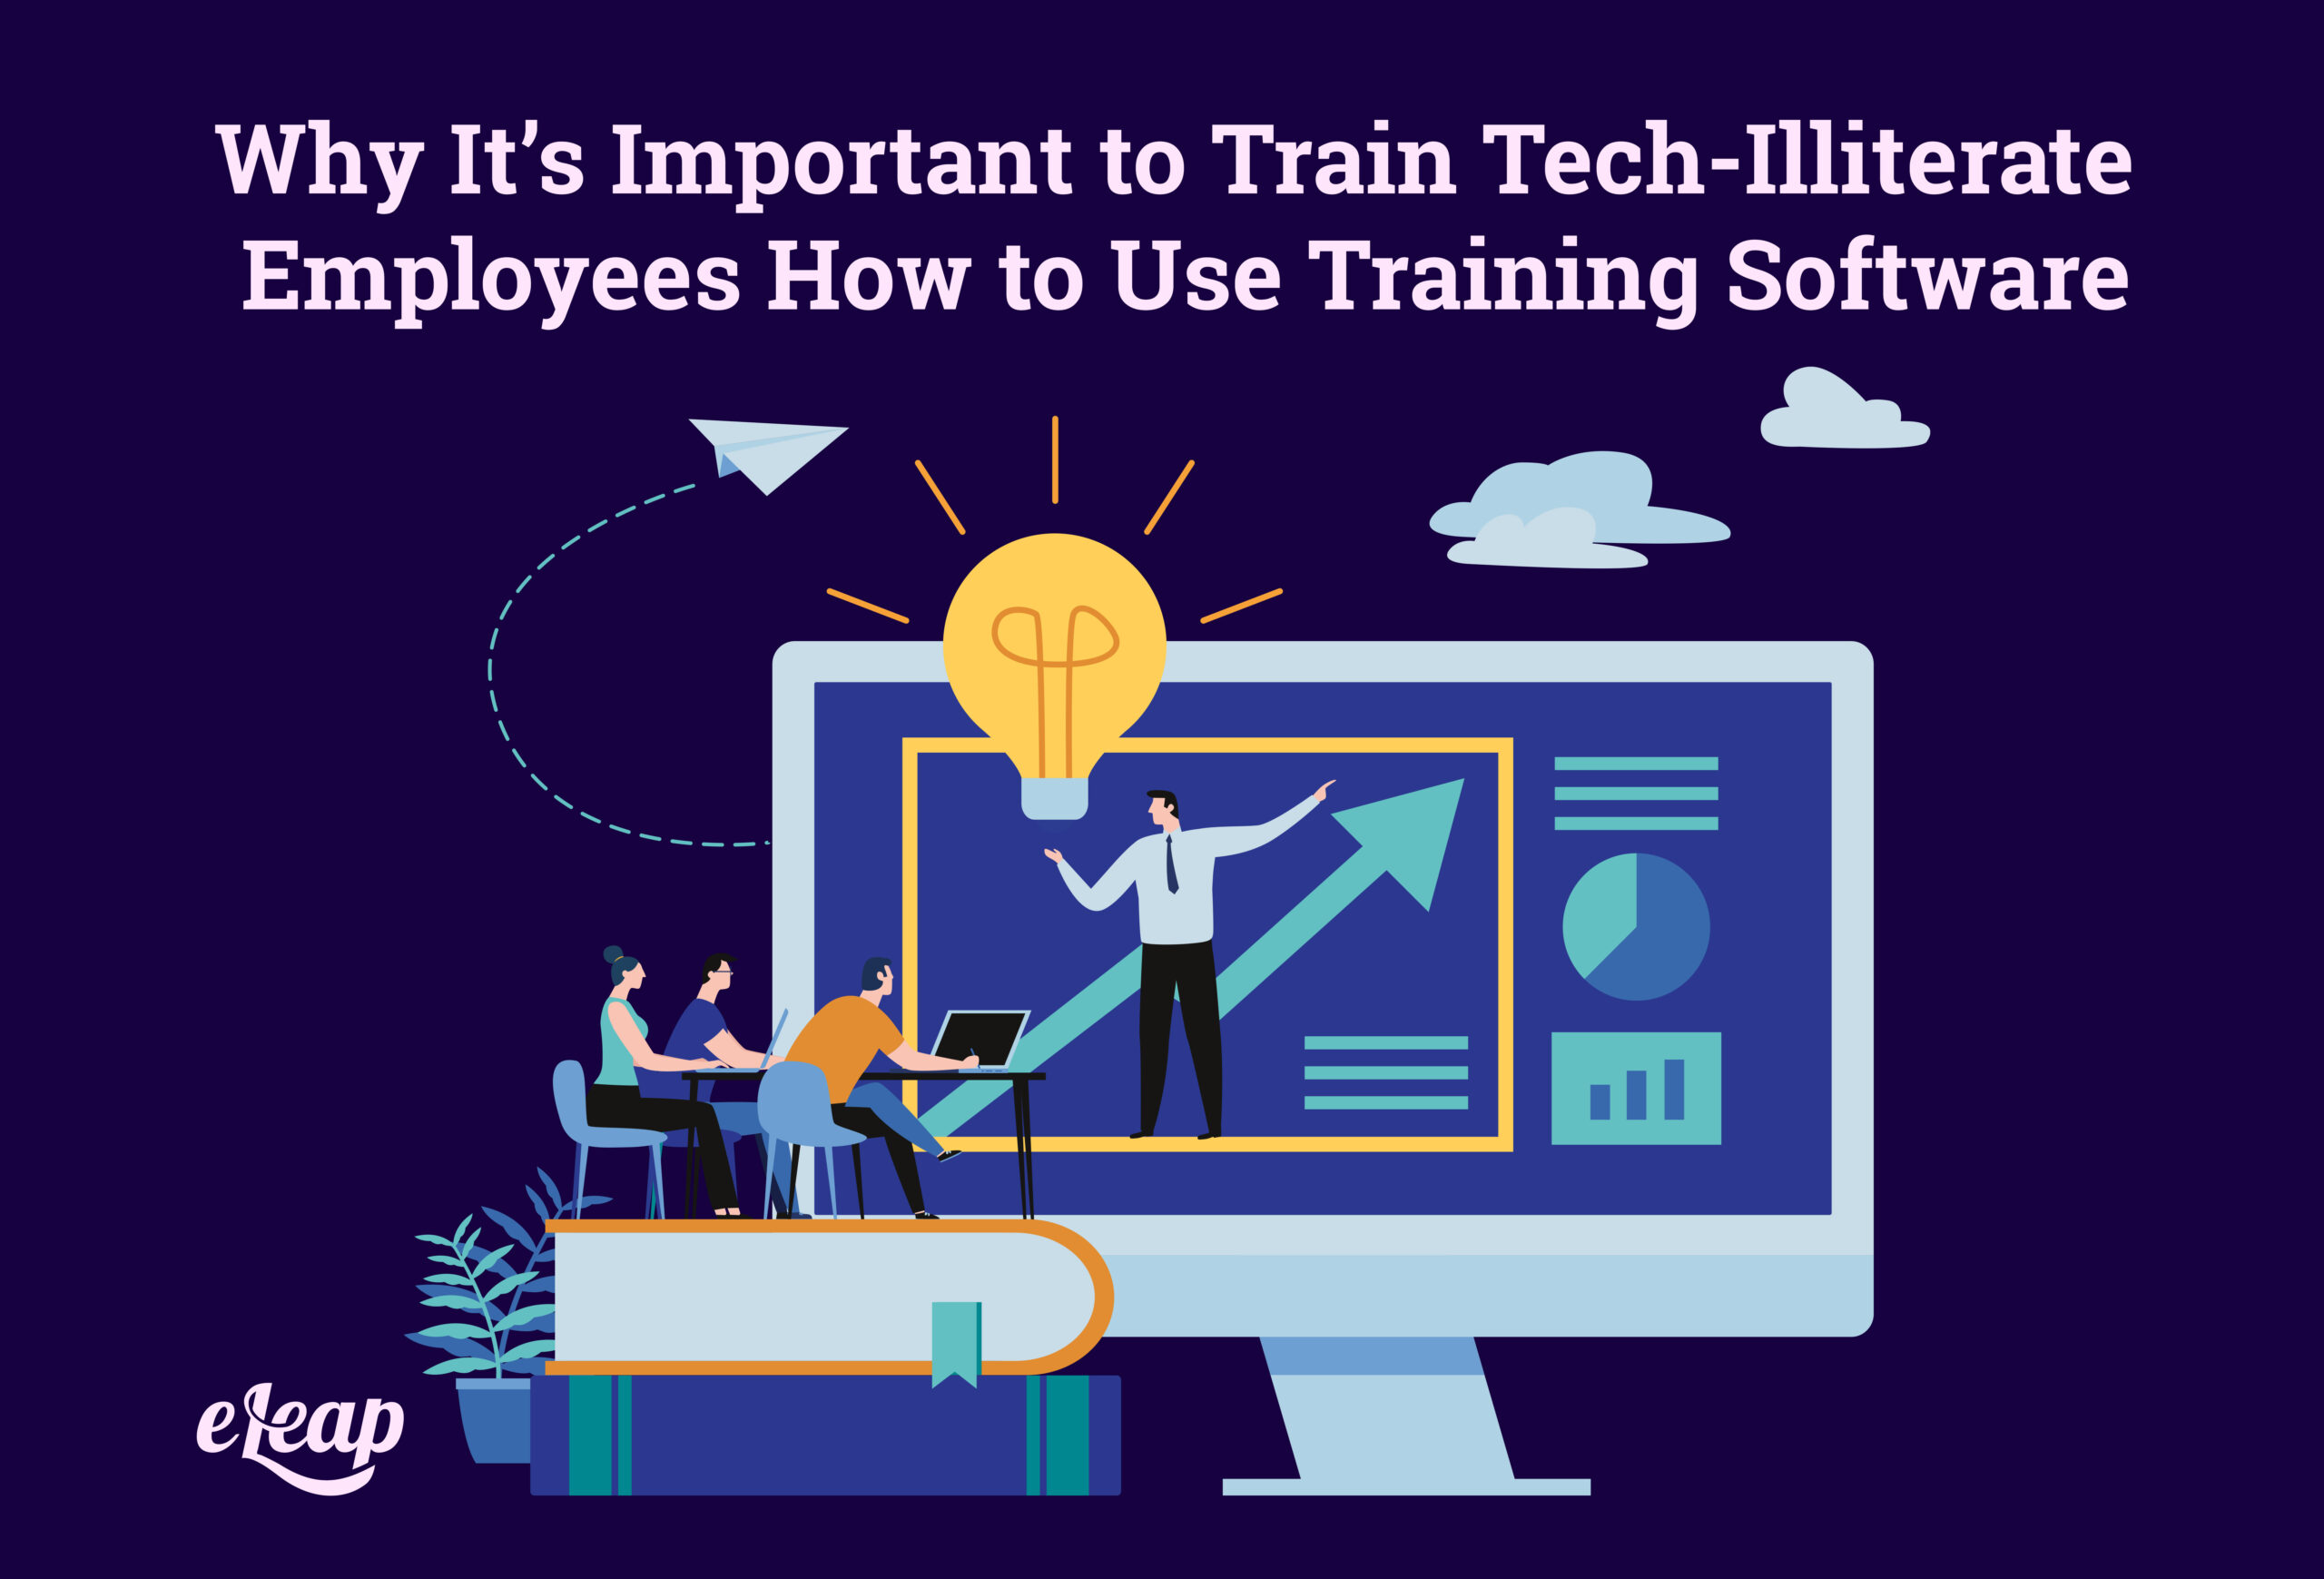 Why It's Important to Train Tech-Illiterate Employees How to Use Training Software